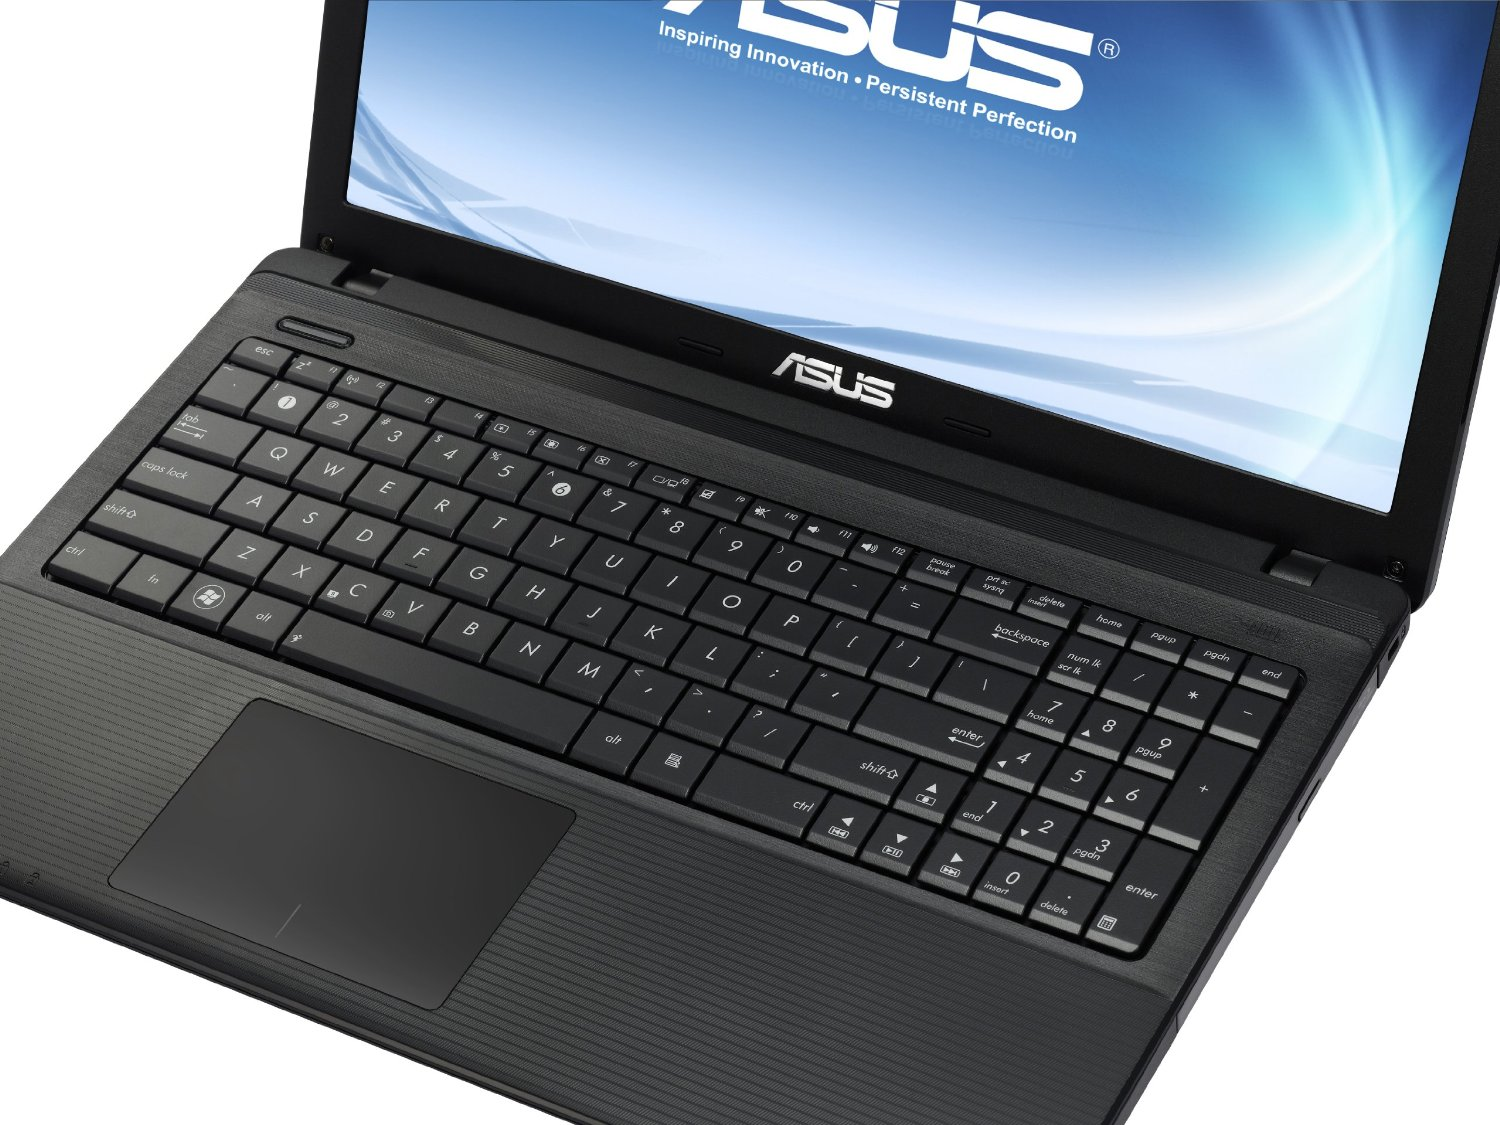 ASUS X55A NOTEBOOK 64BIT DRIVER DOWNLOAD